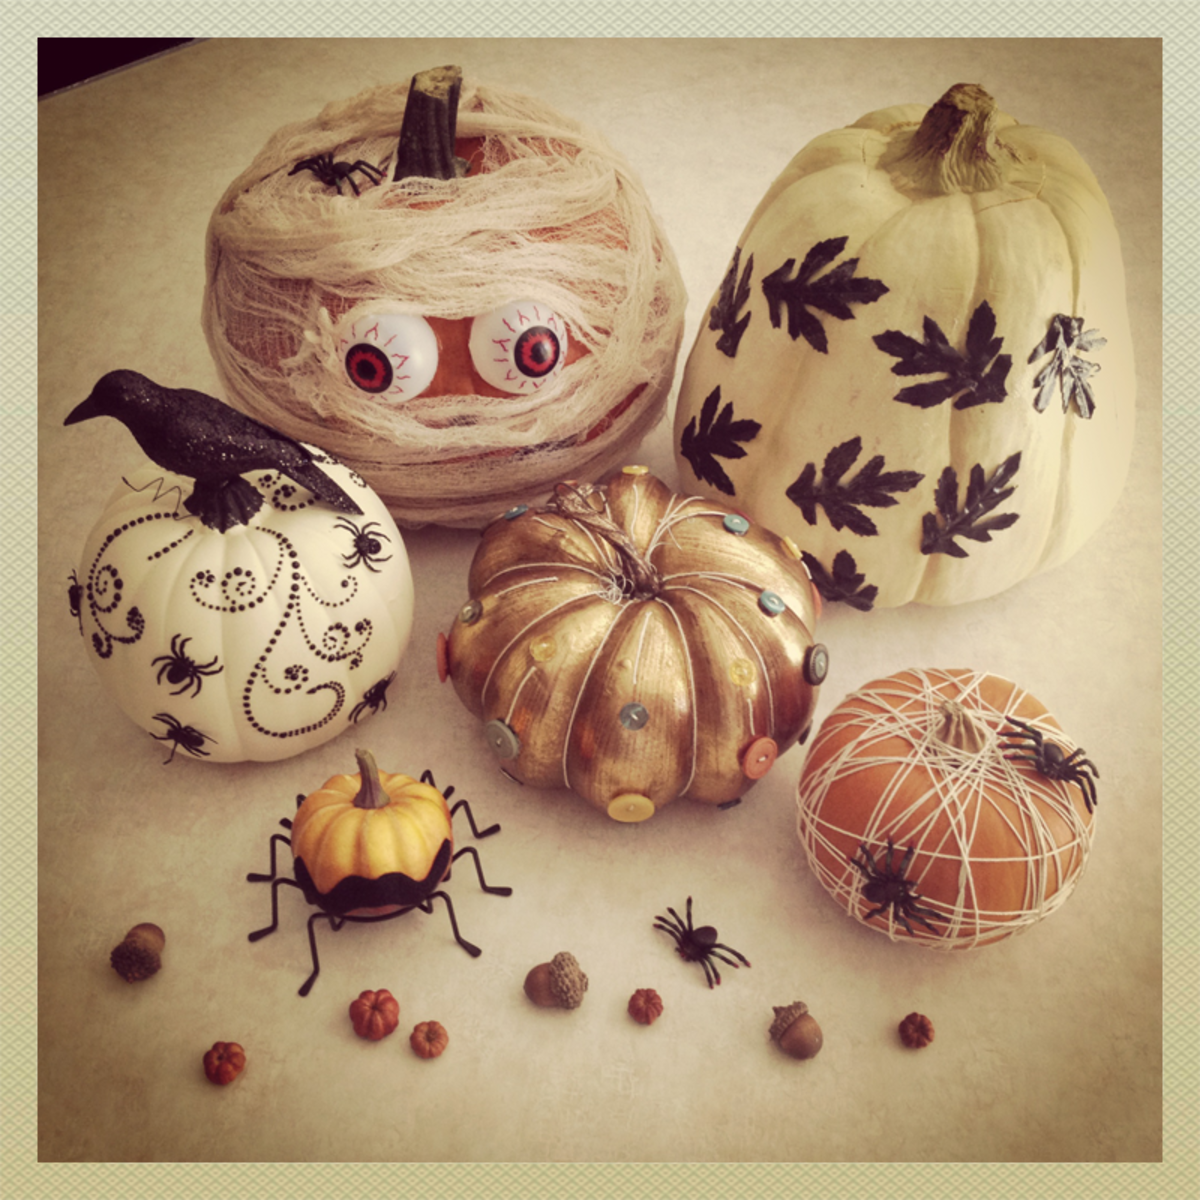 No Carve Halloween Pumpkins - Ideas for Decorating Pumpkins Quickly without Carving